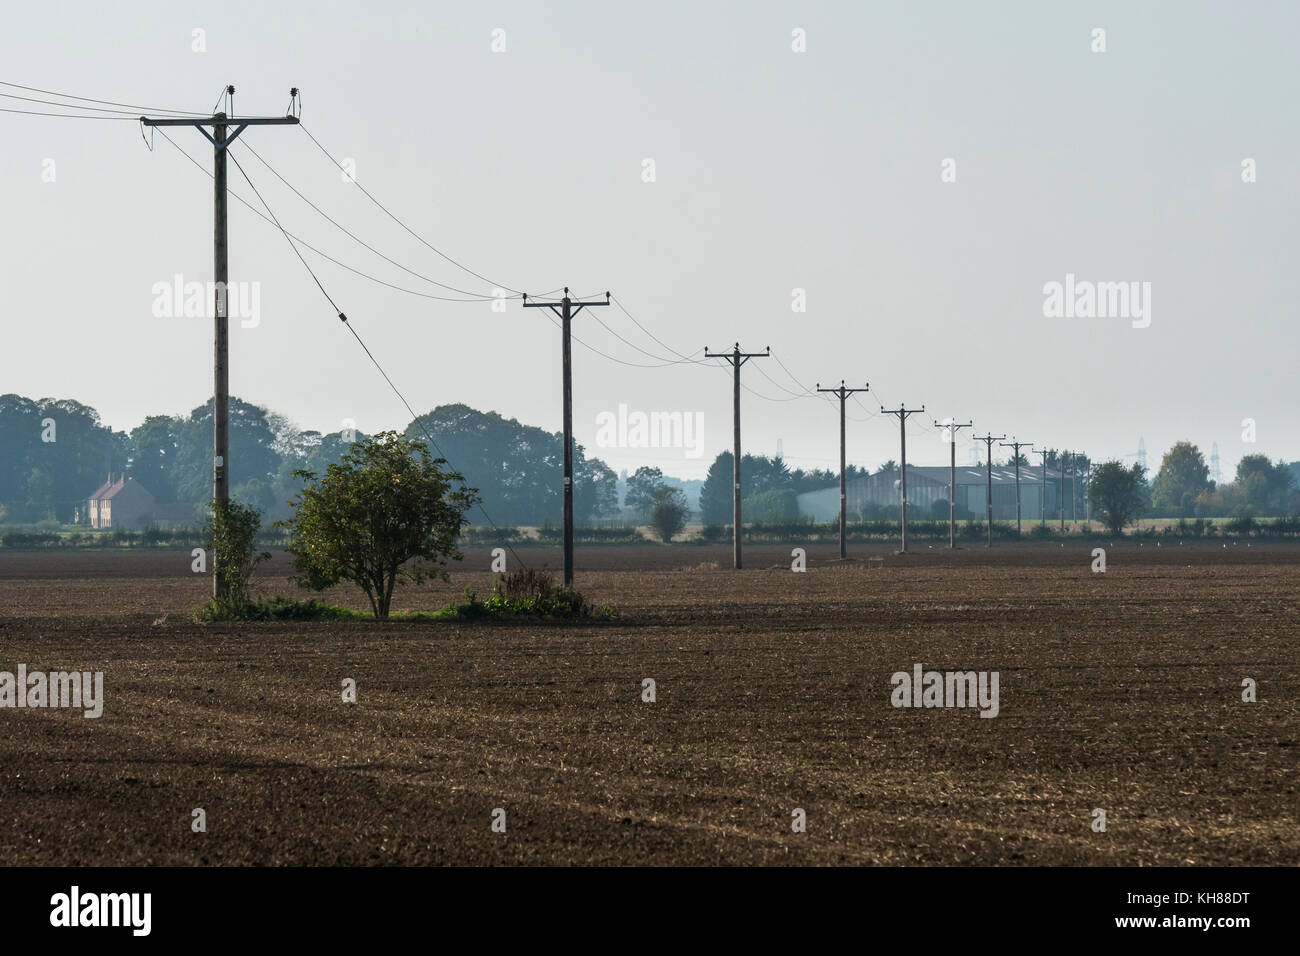 Flat, rural, farmland landscape with long line of wooden poles supporting hi-voltage electricity power lines - Burnby, - Stock Image